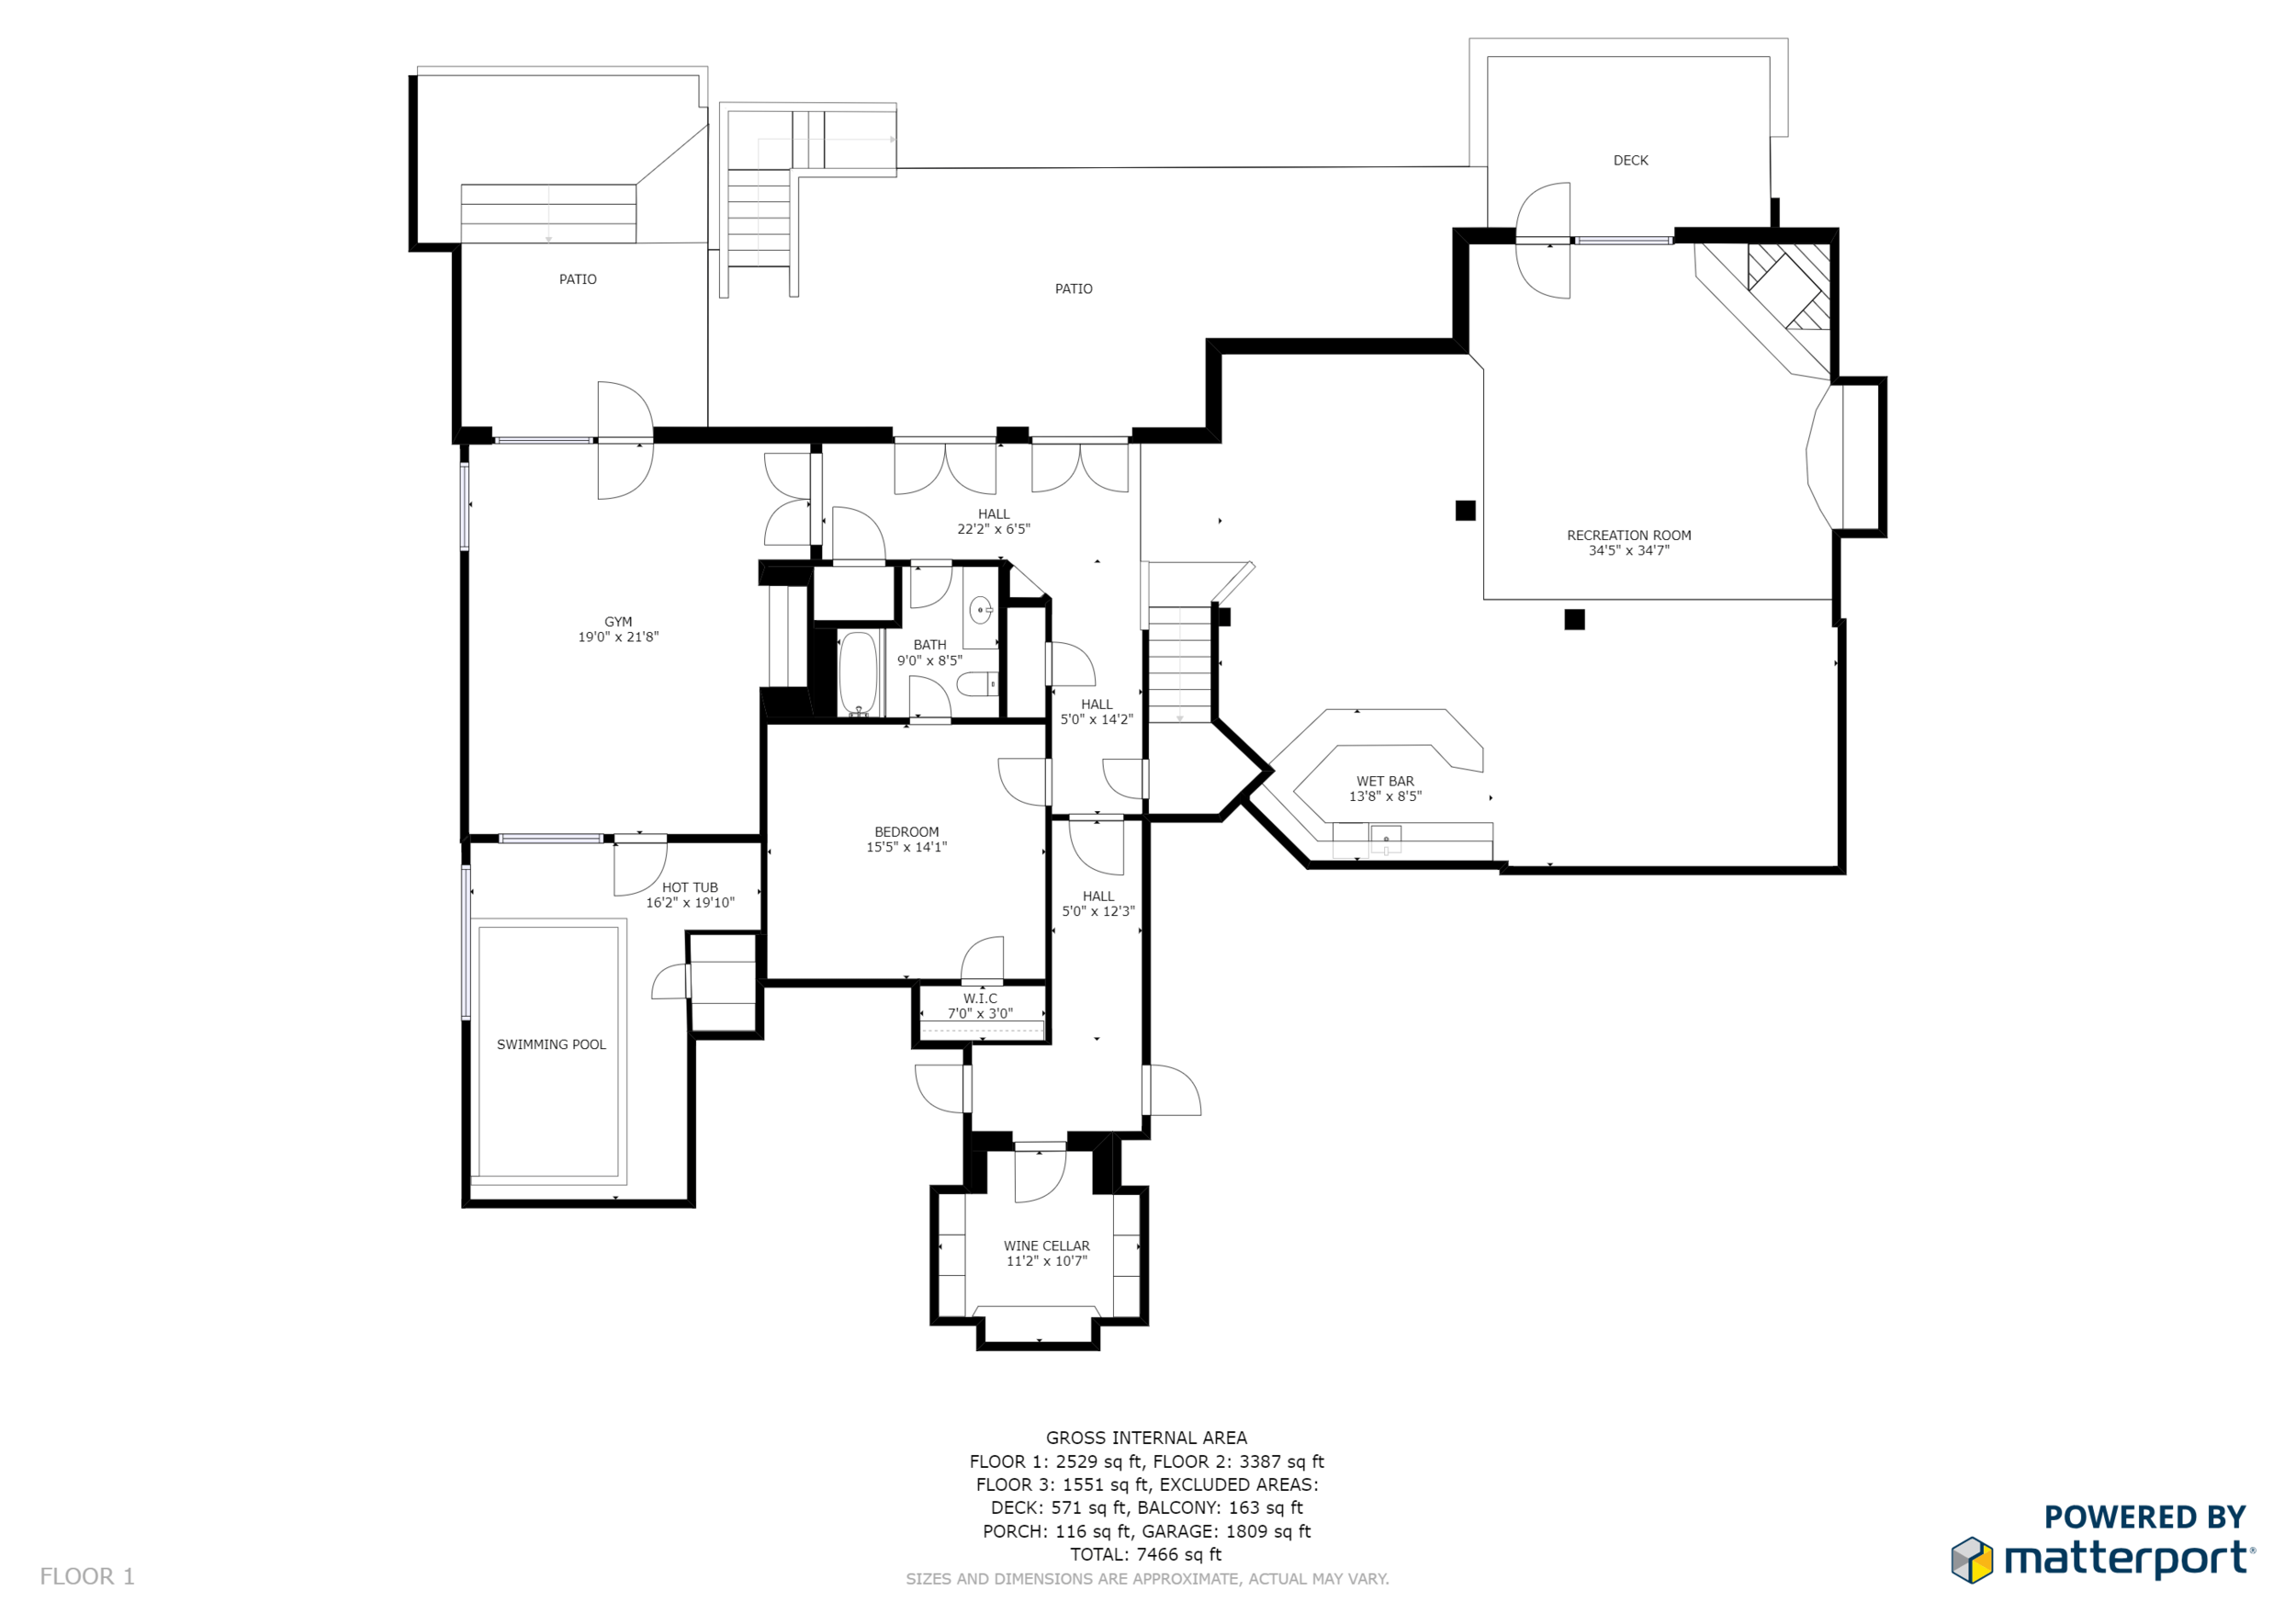 B&W Basic Schematic Floor Plans